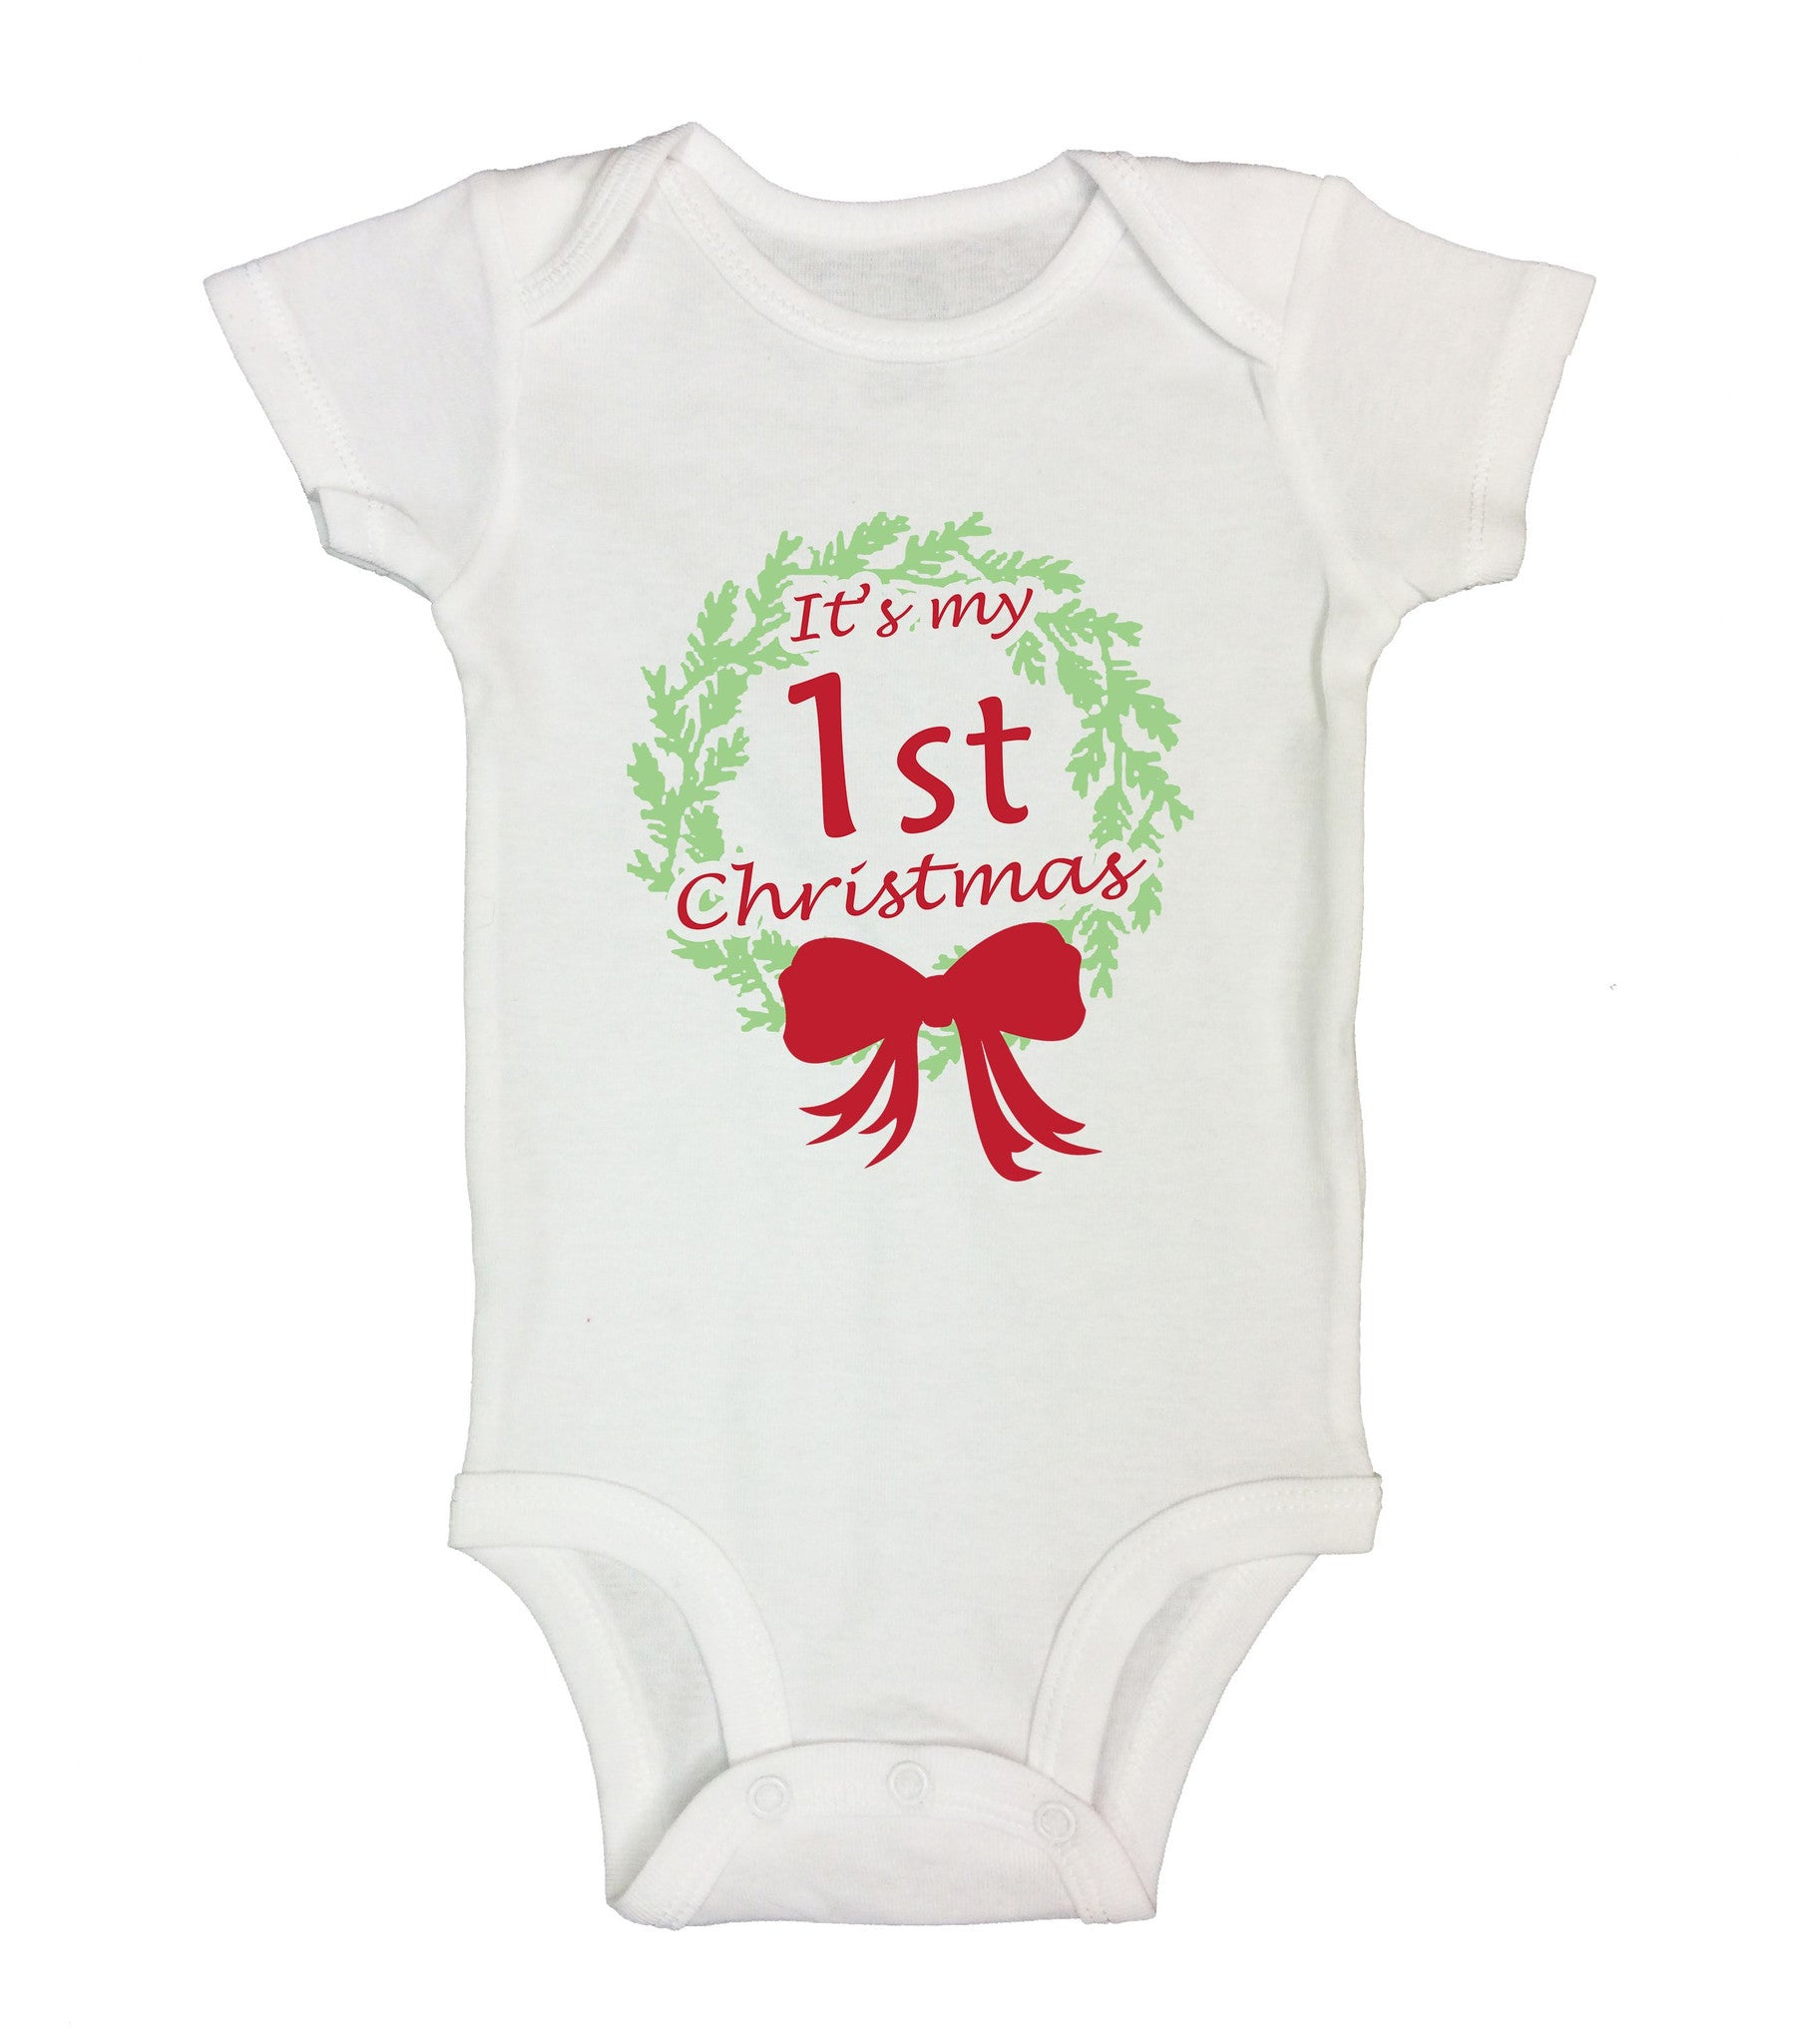 It's My 1st Christmas Funny Kids Onesie - B58 - Funny Shirts Tank Tops Burnouts and Triblends  - 2